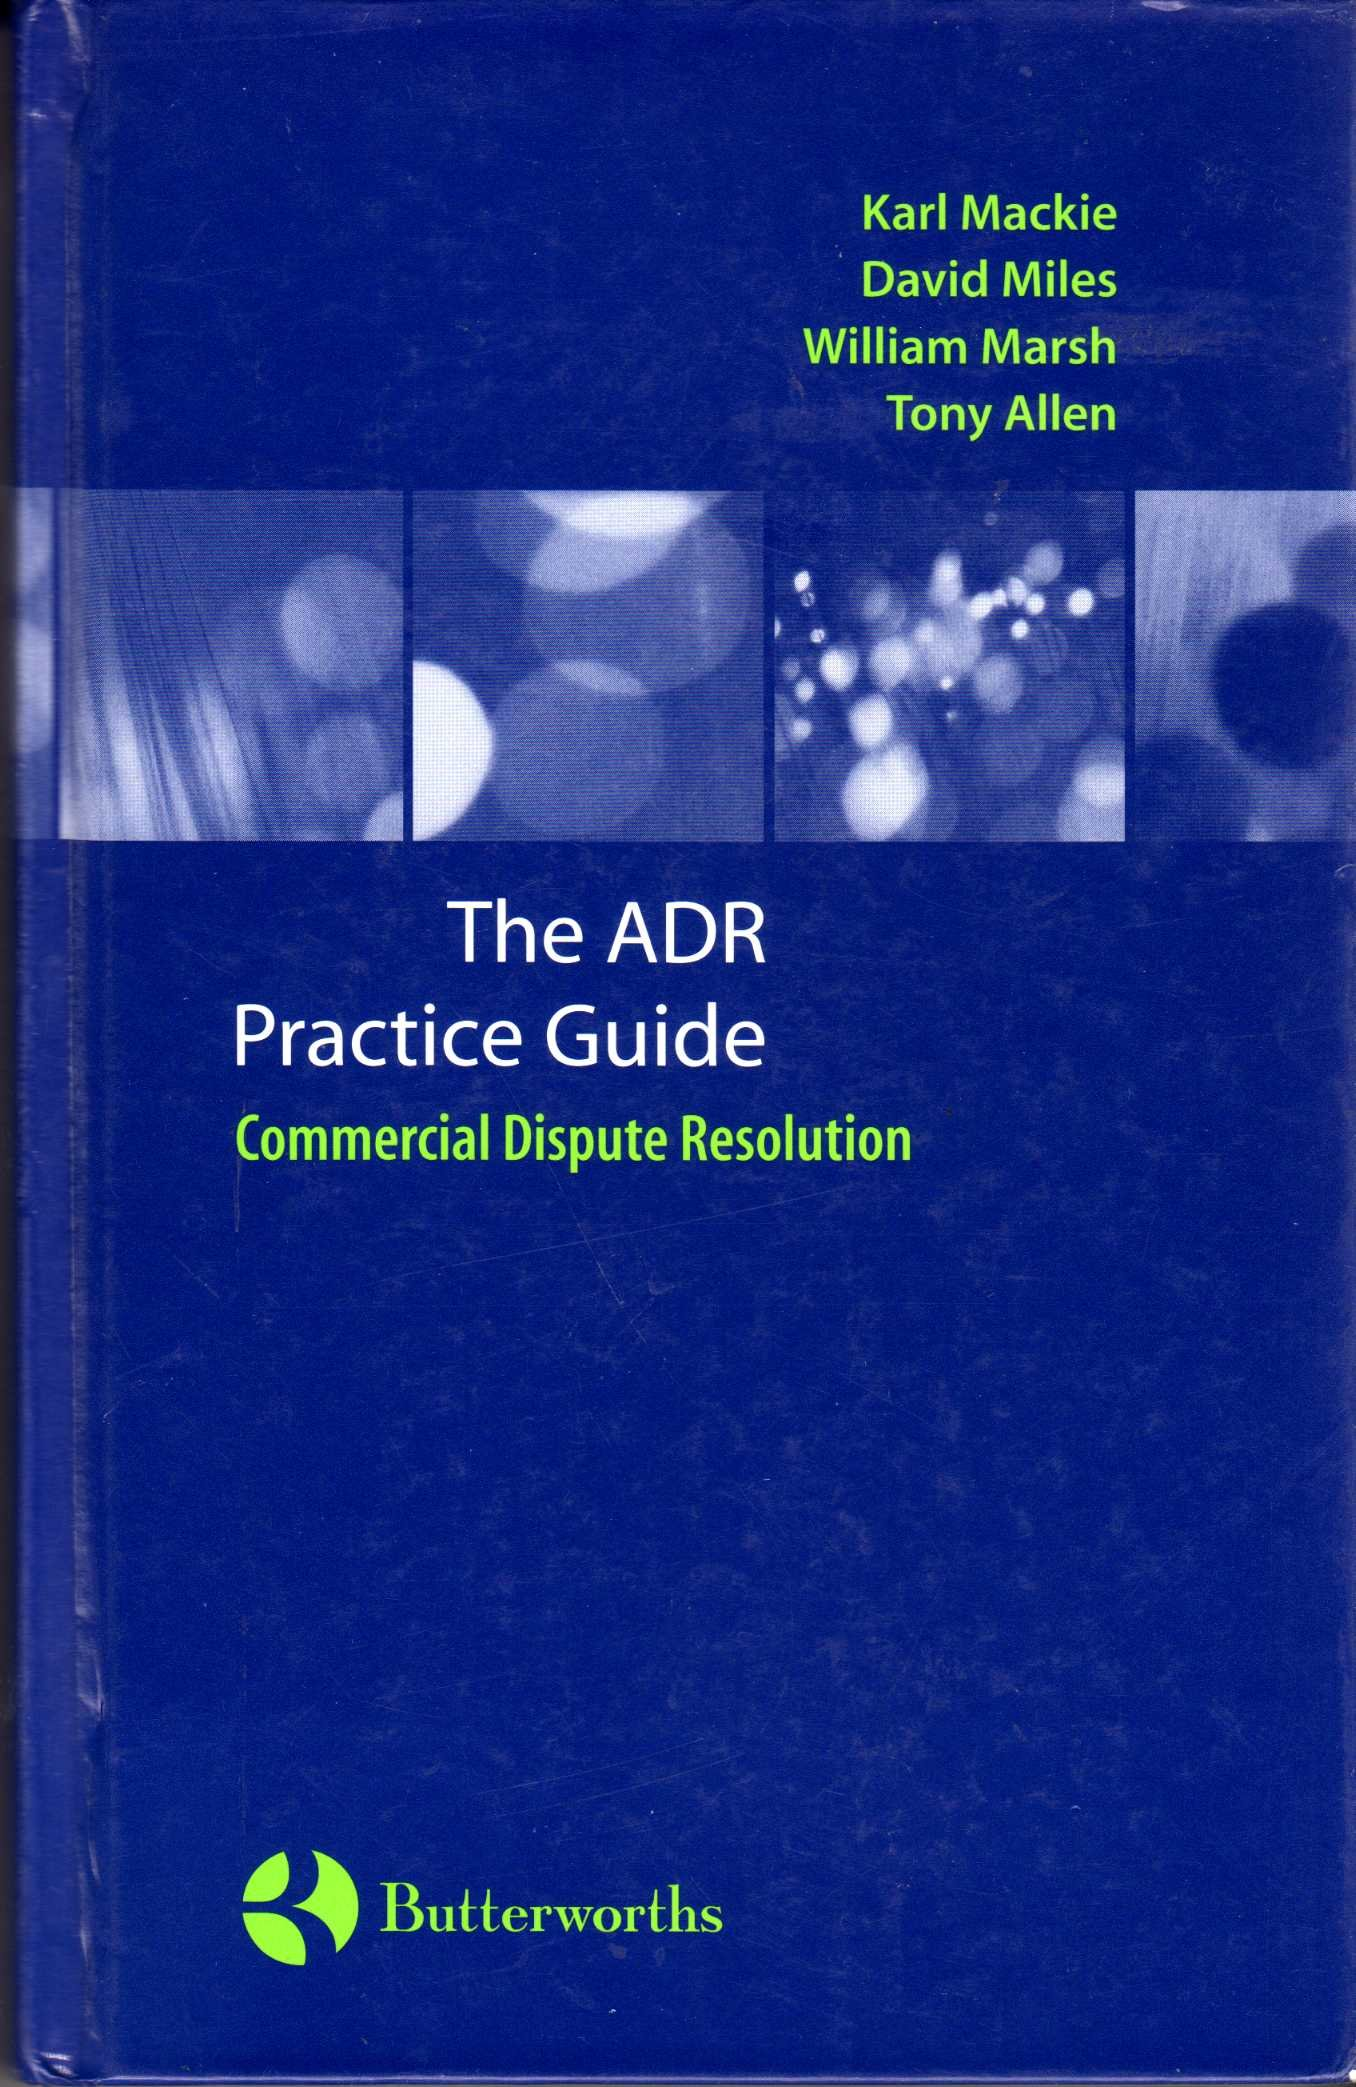 Commercial Dispute Resolution: An ADR Practice Guide Text fb2 book